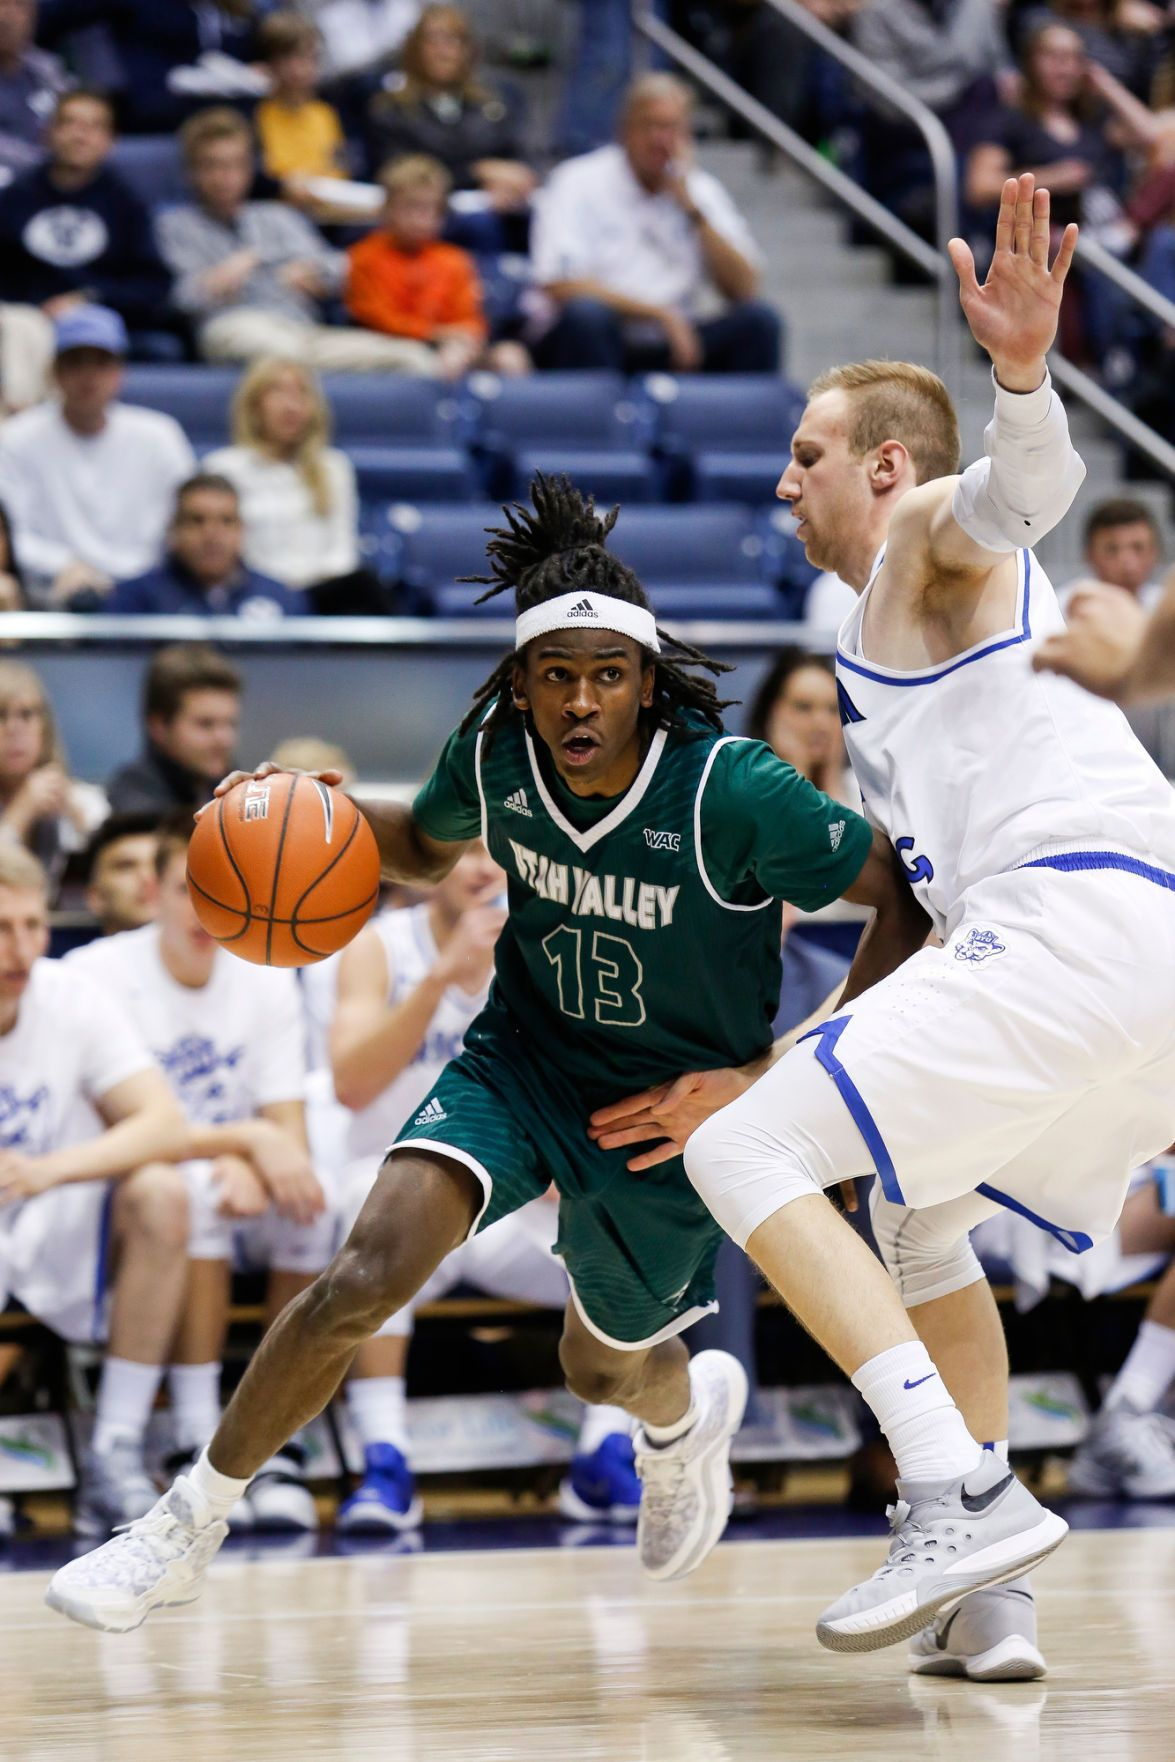 UVU announces men's basketball schedule (With images